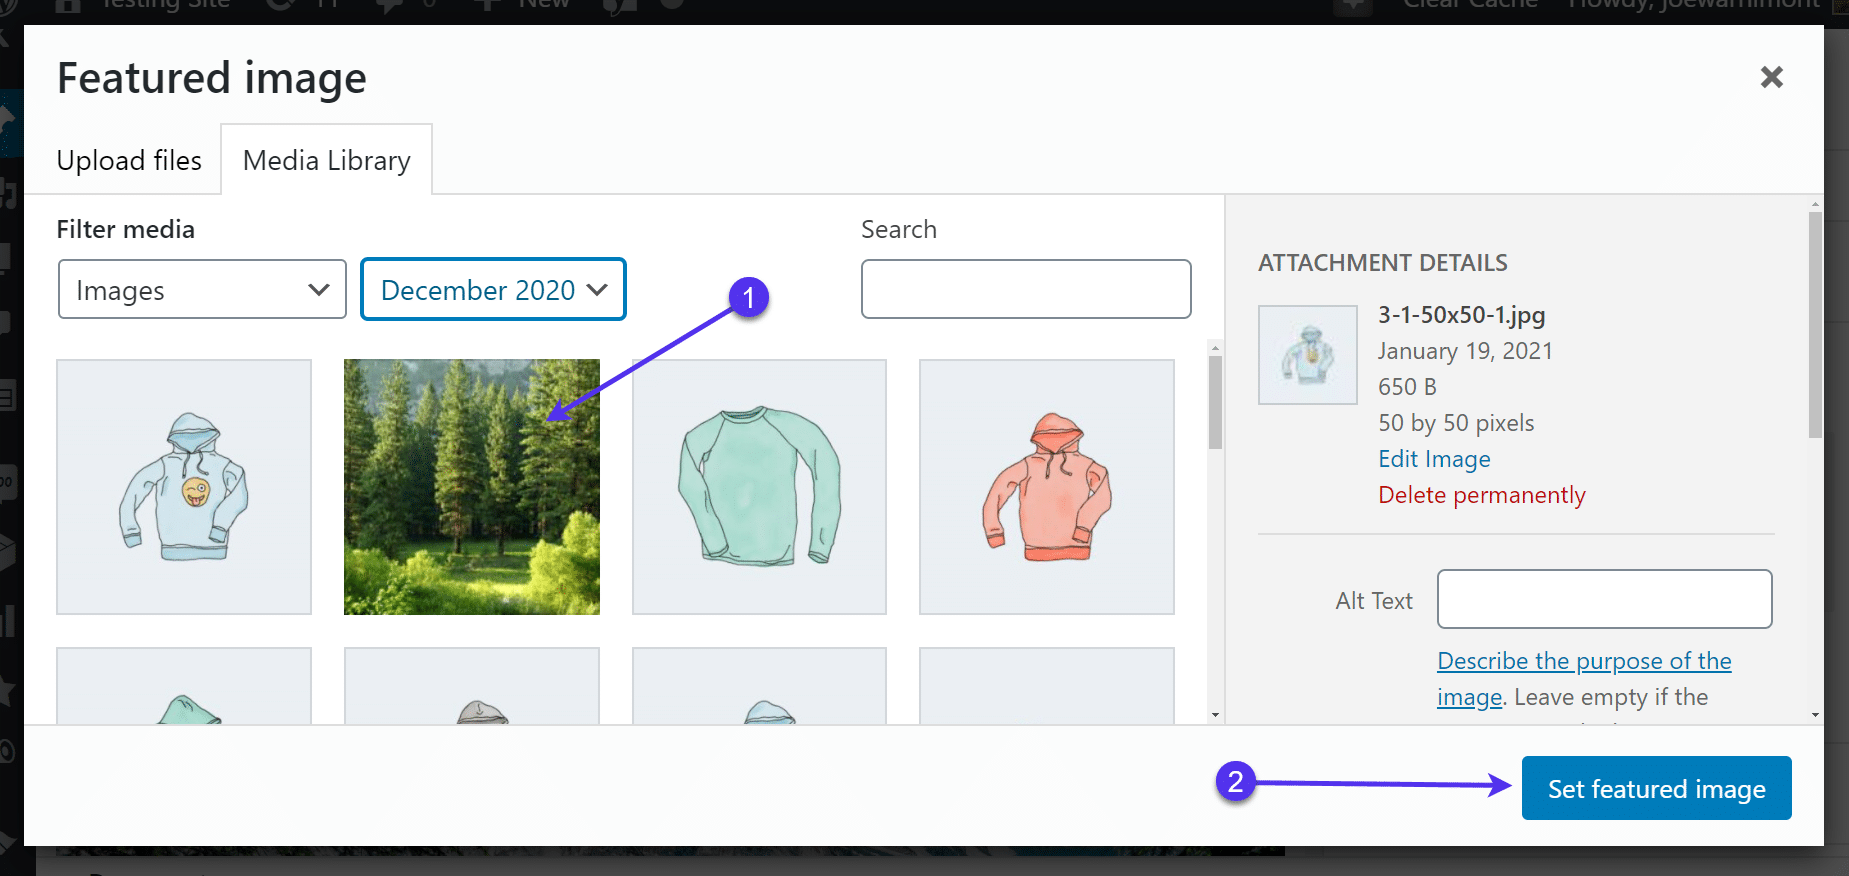 Choose an image to 'Set featured image'